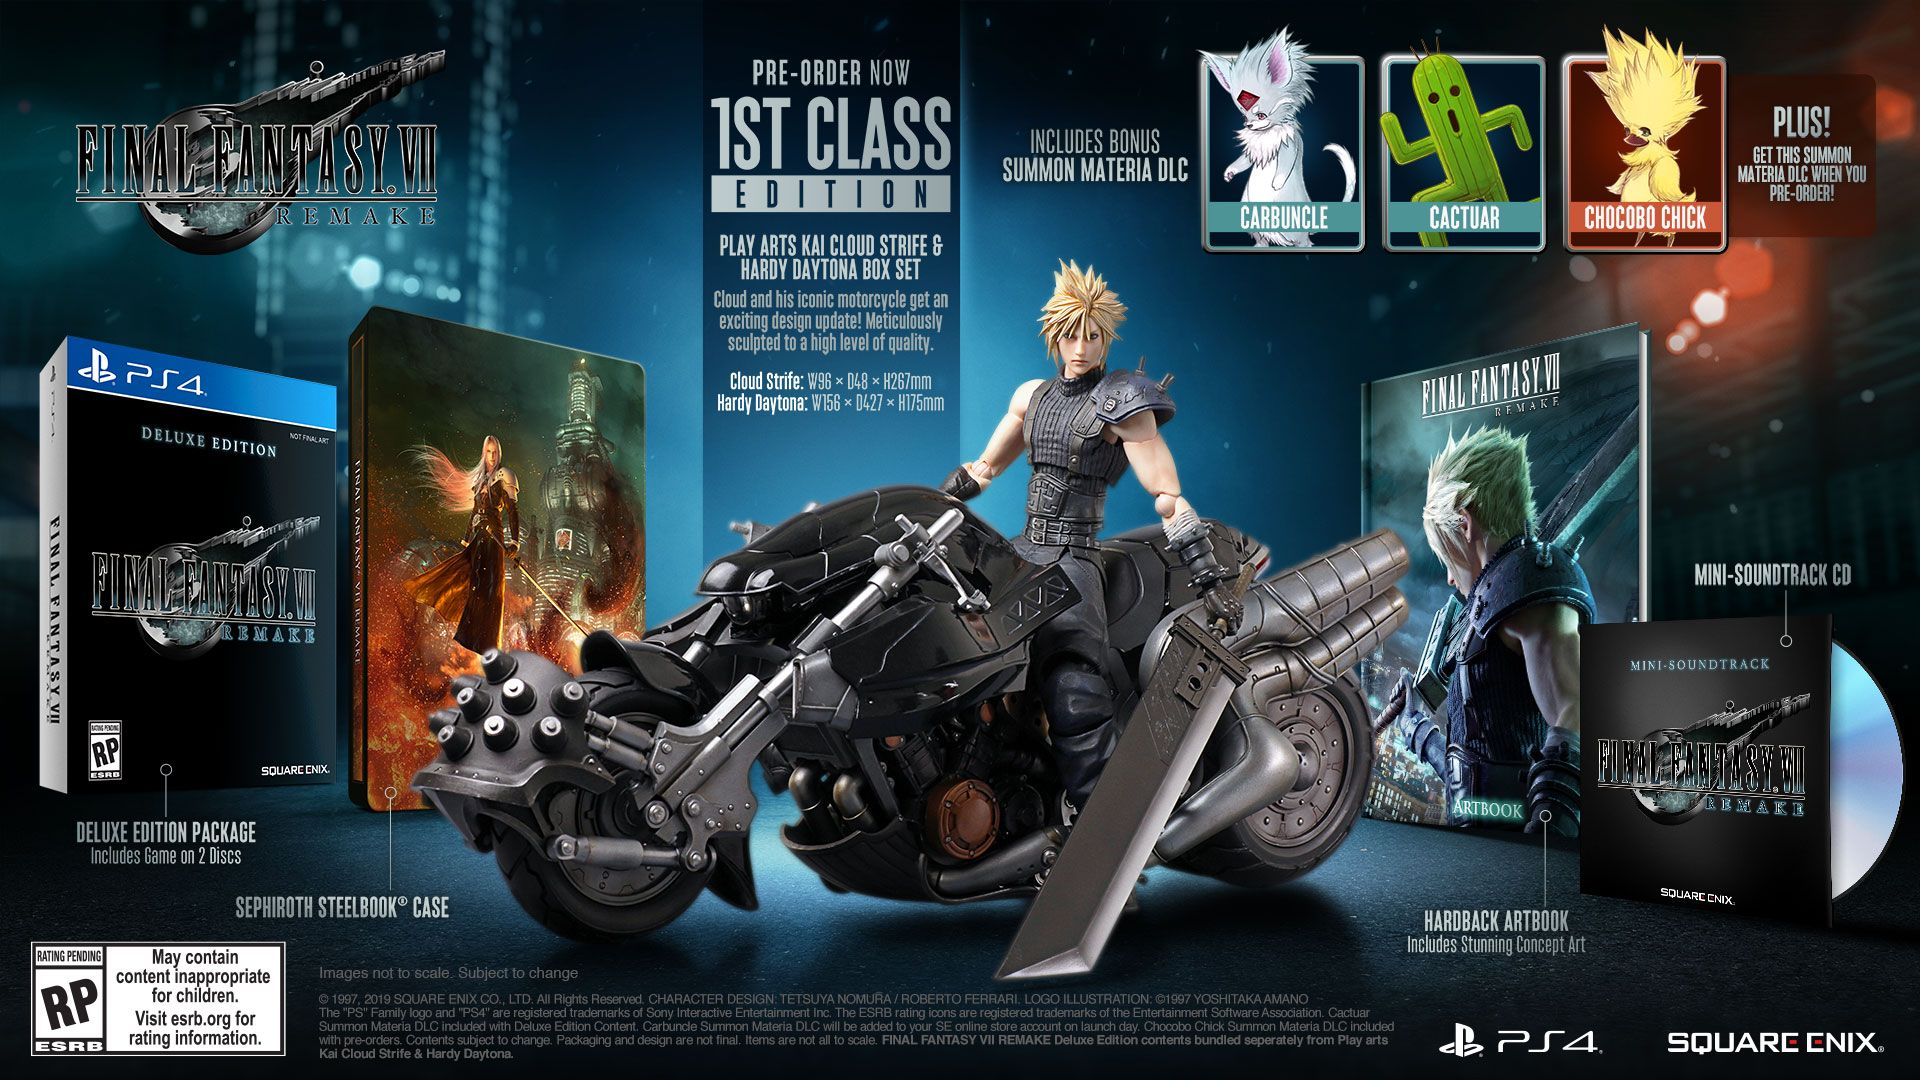 Final Fantasy 7 Remake Deluxe And 1st Class Editions Confirmed For